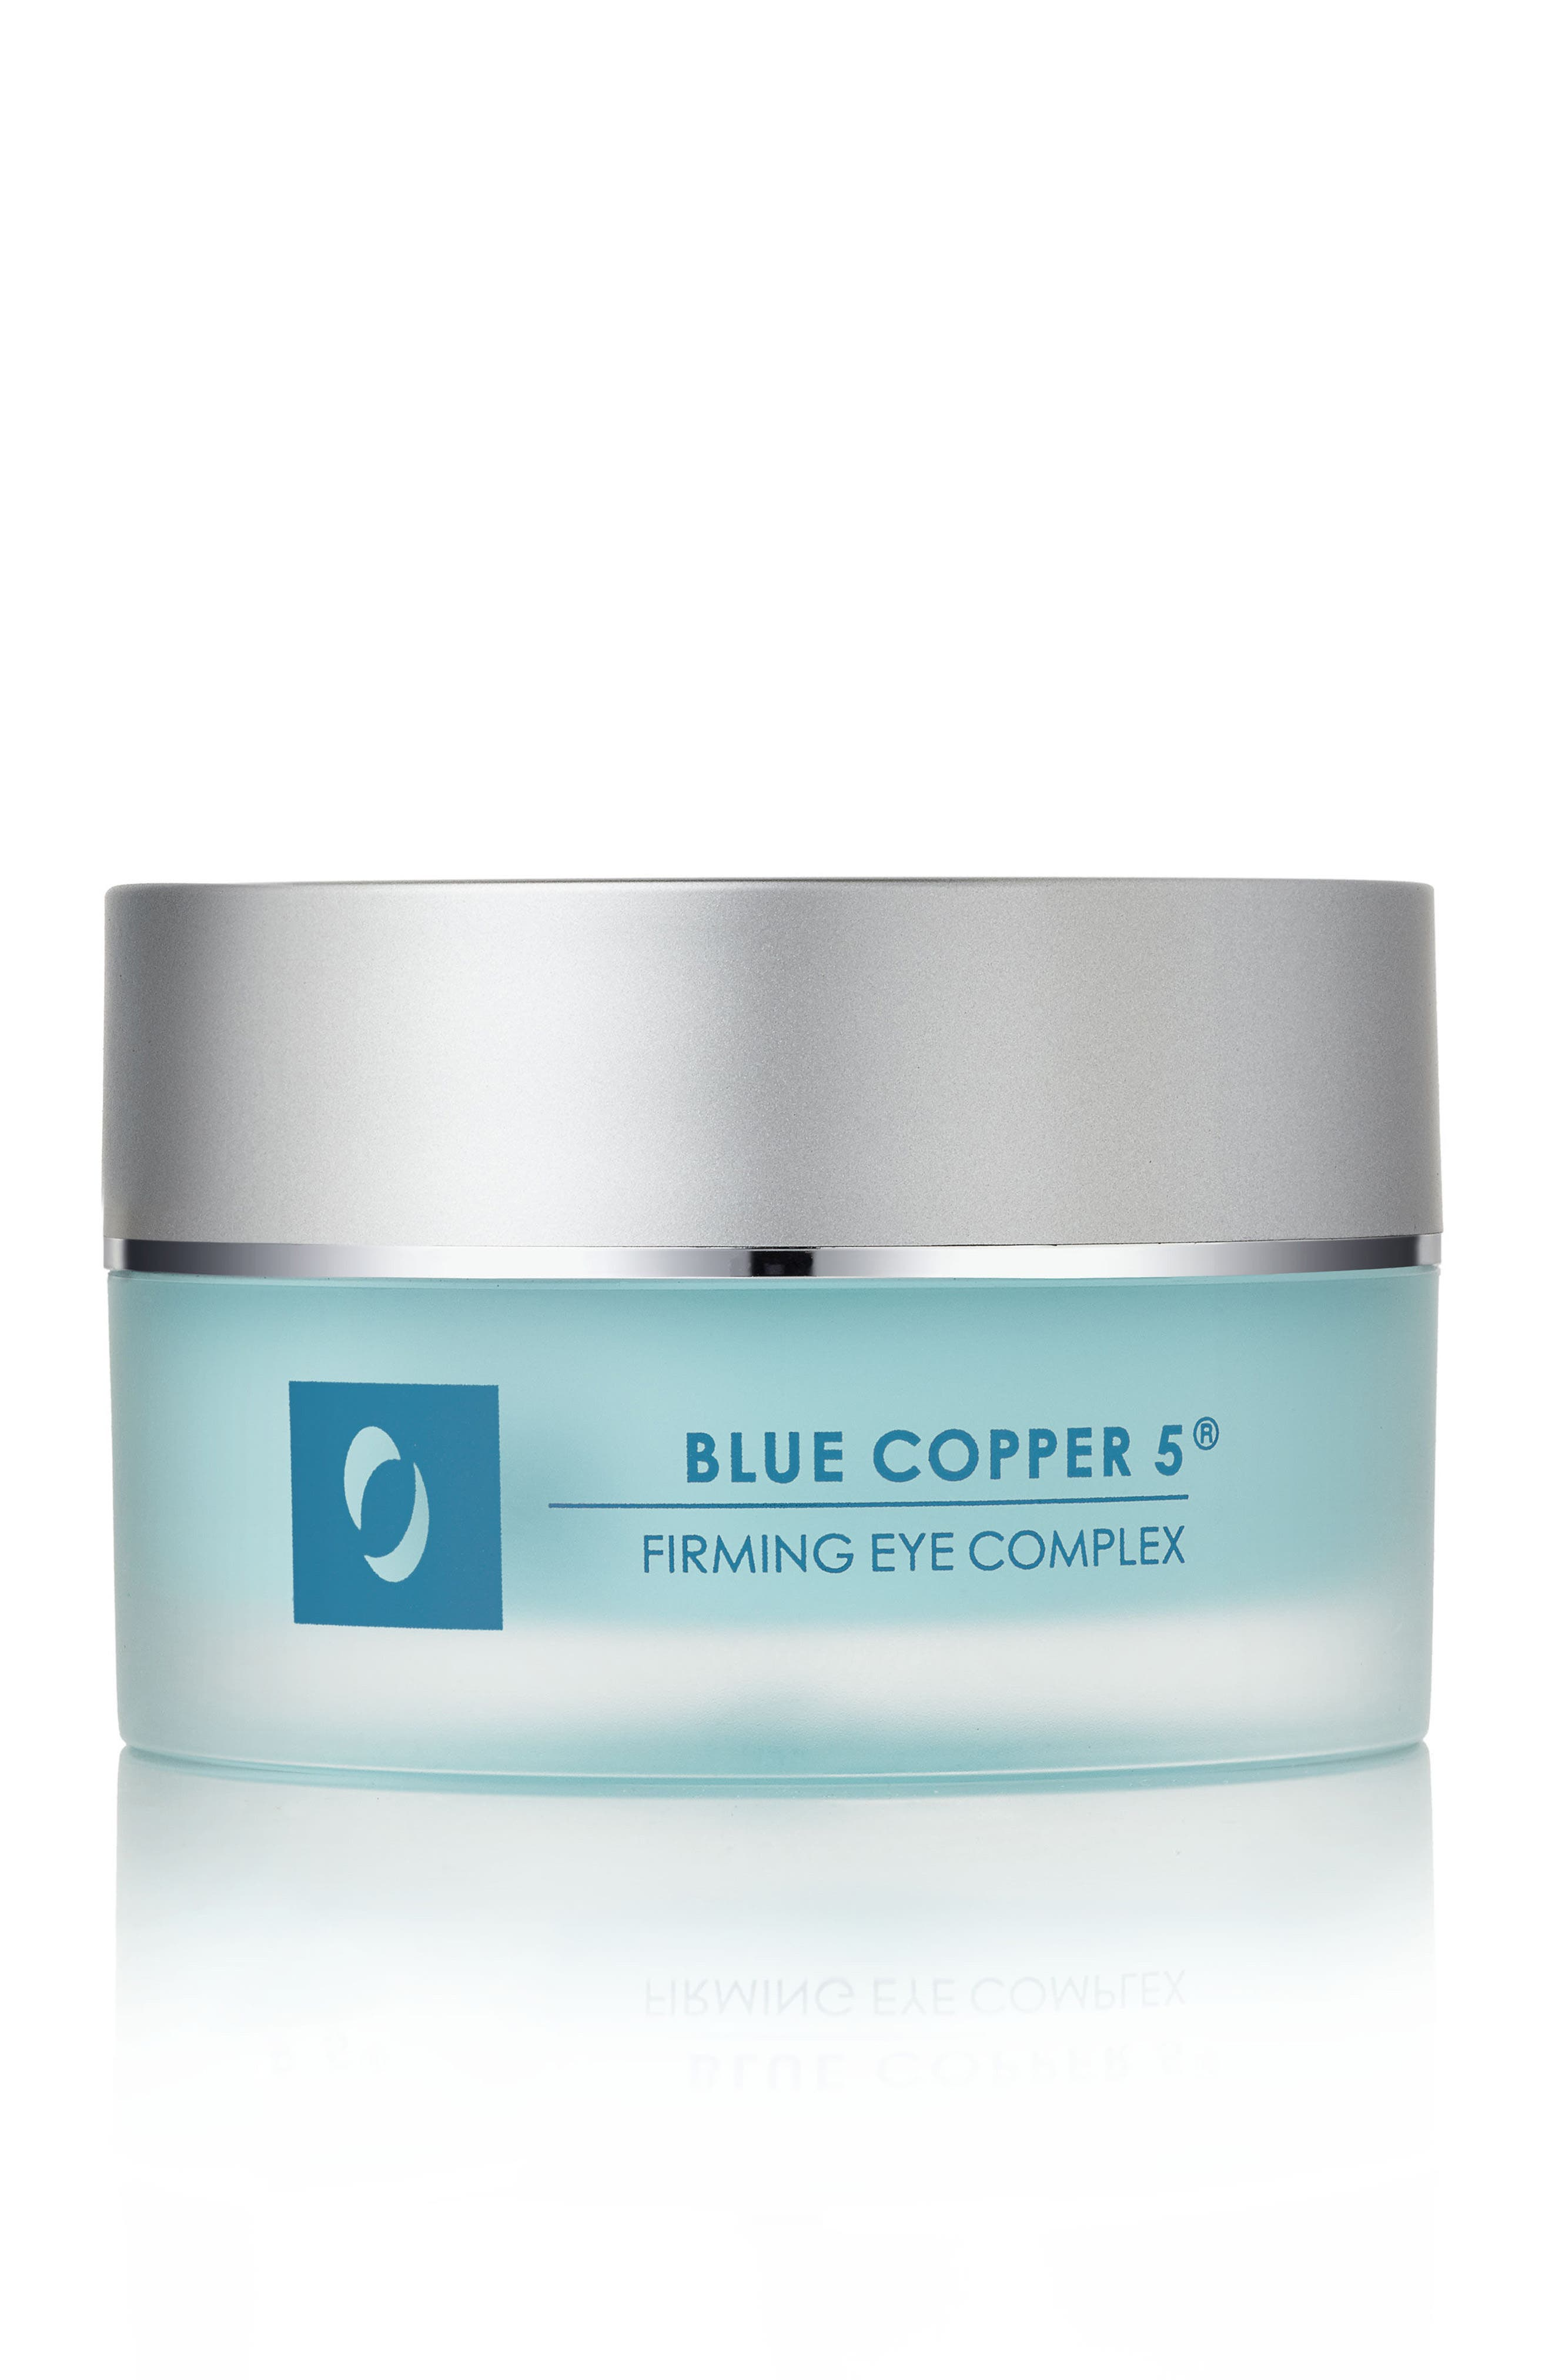 Blue Copper 5 Firming Eye Complex,                             Main thumbnail 1, color,                             No Color